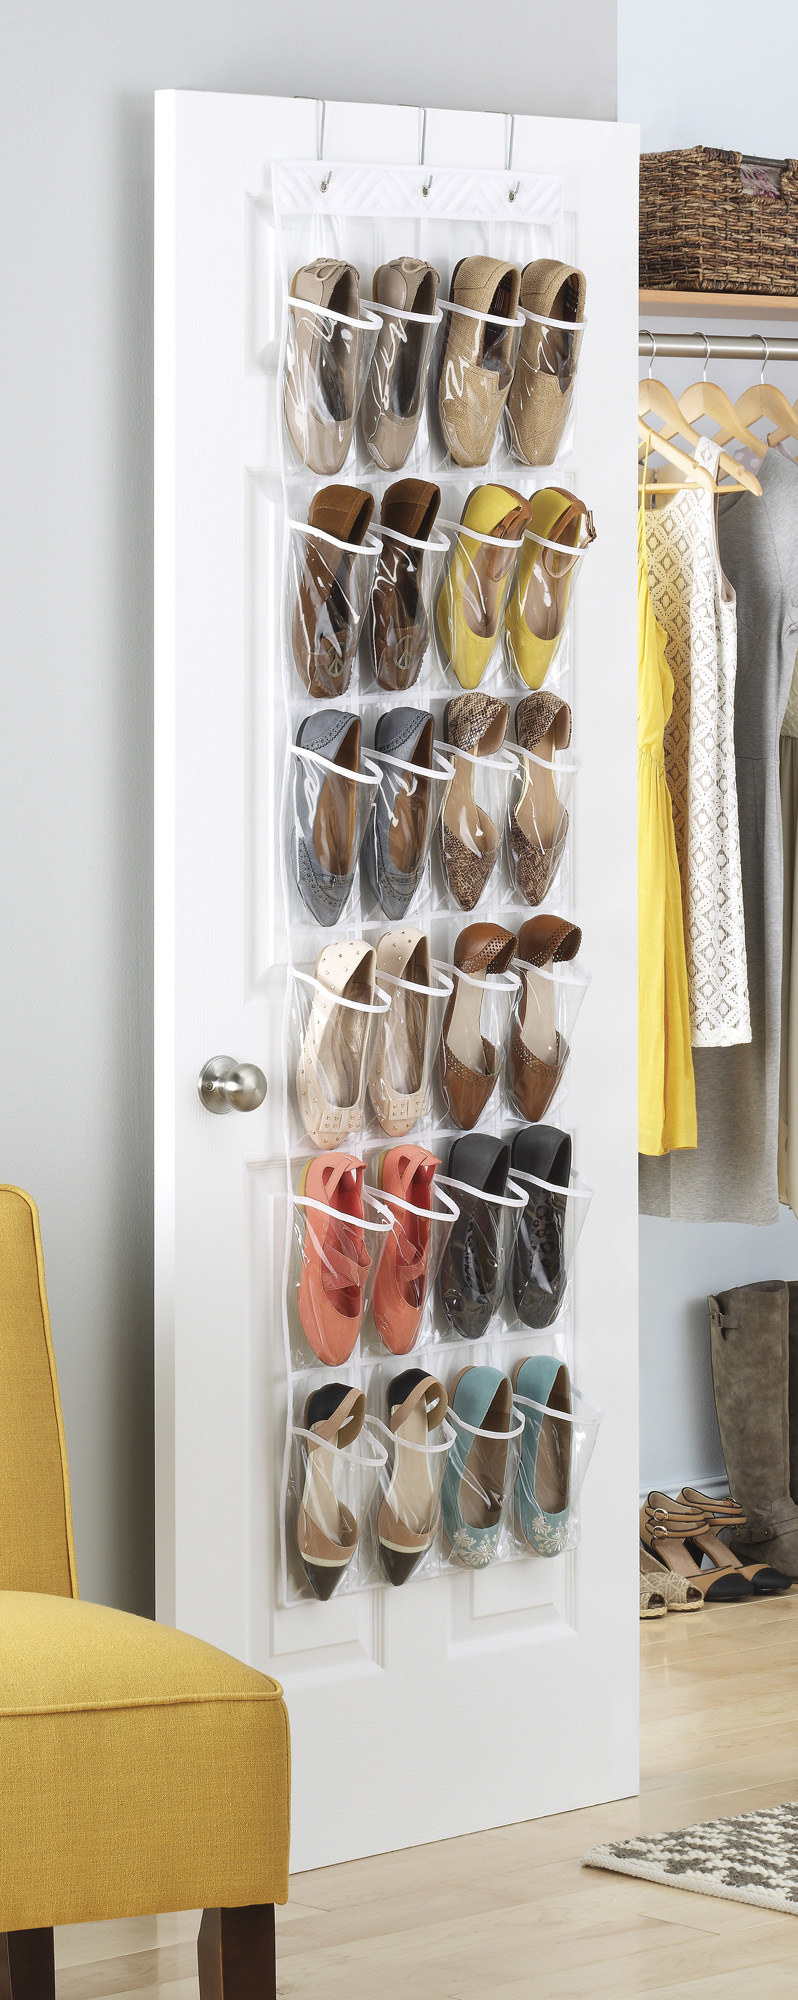 Over the door shoe organizer with clear pockets